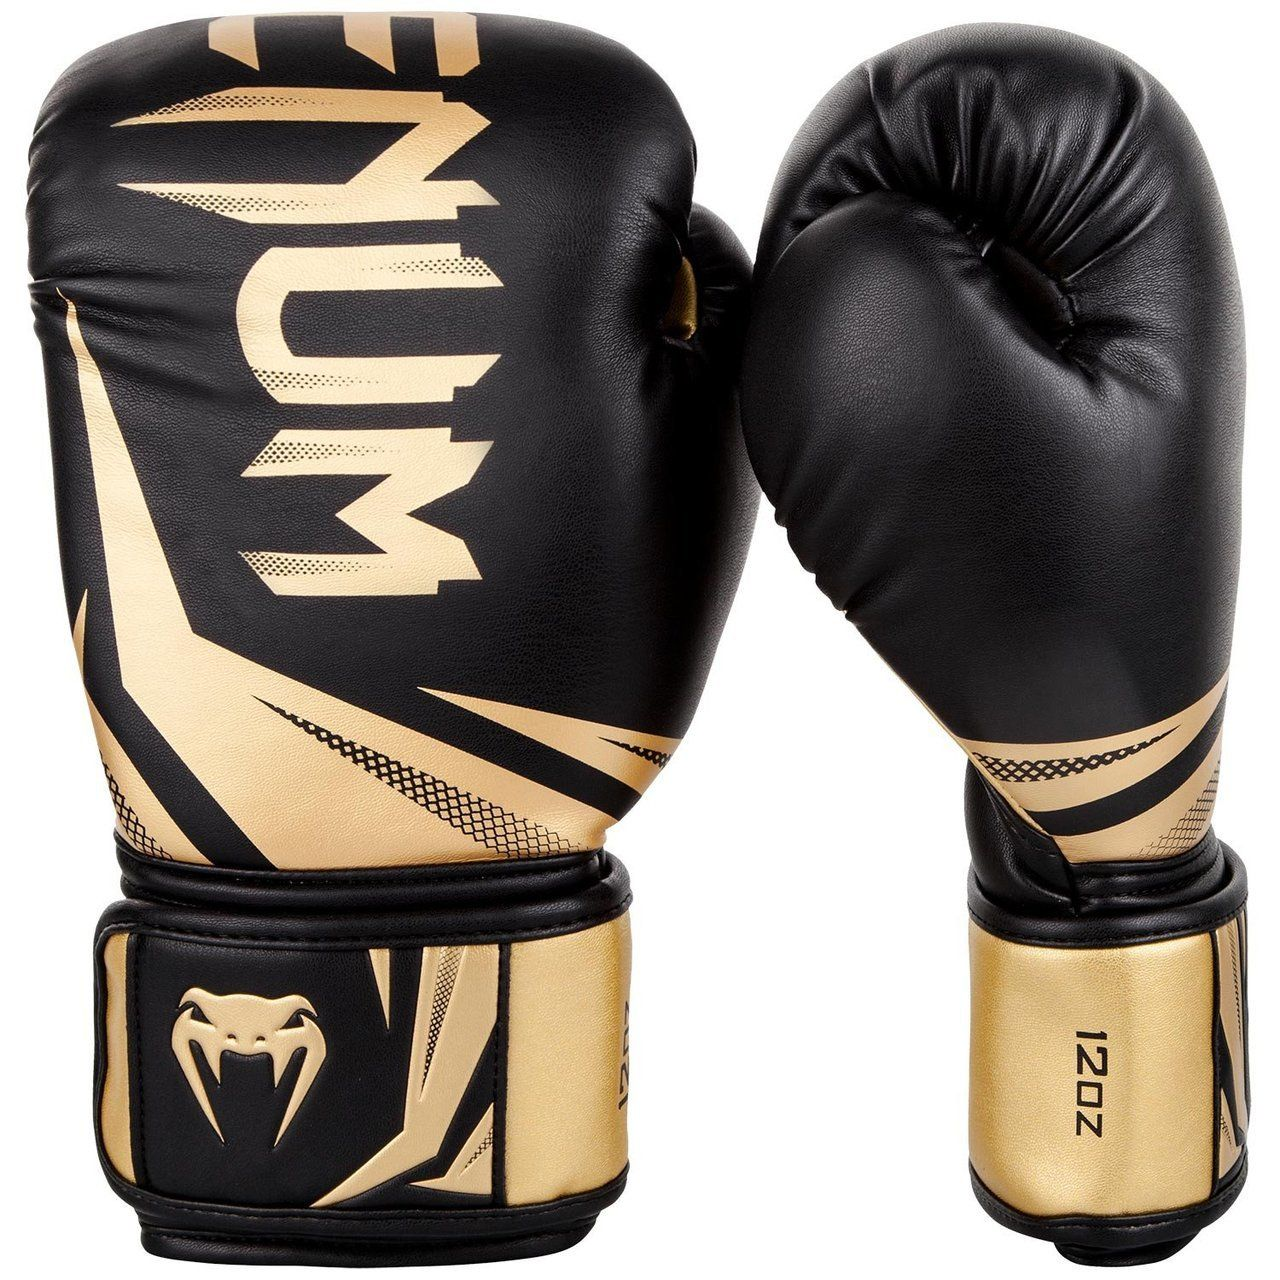 Venum Challenger 3 0 Boxing Gloves Black Gold Boxing Gloves Boxing Training Gloves Training Gloves